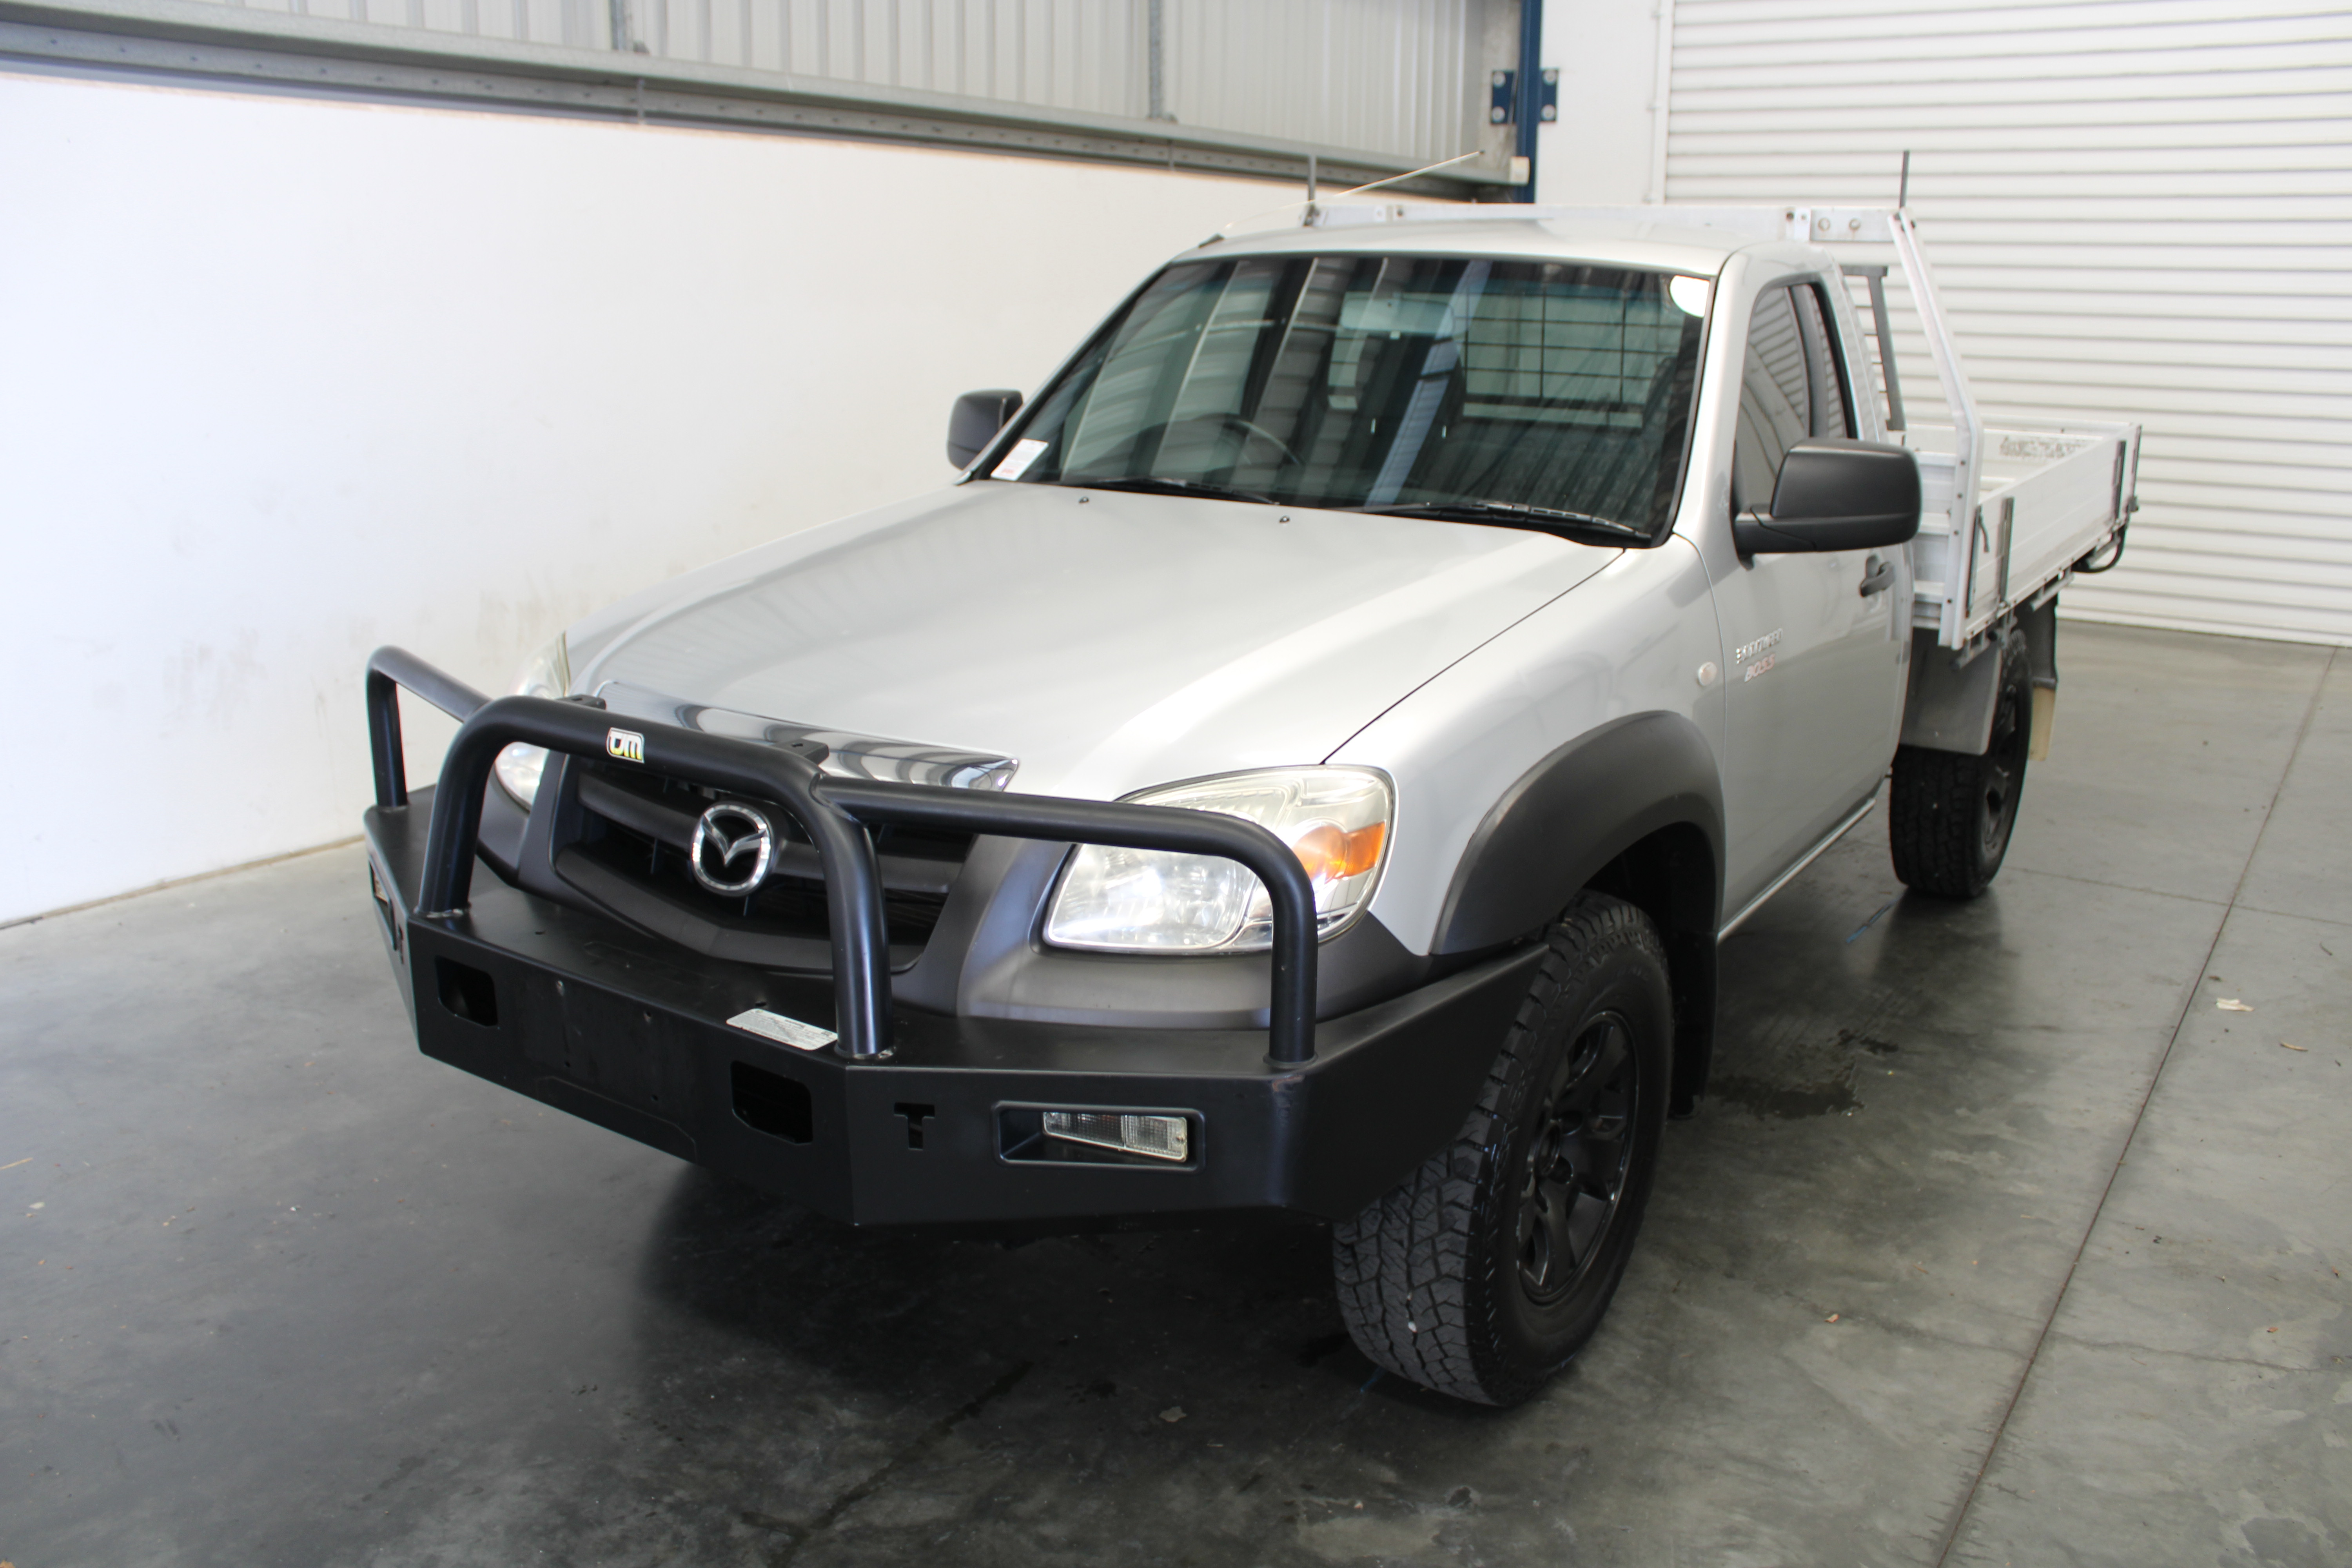 2010 Mazda BT-50 DX 4x4 Turbo Diesel Cab Chassis